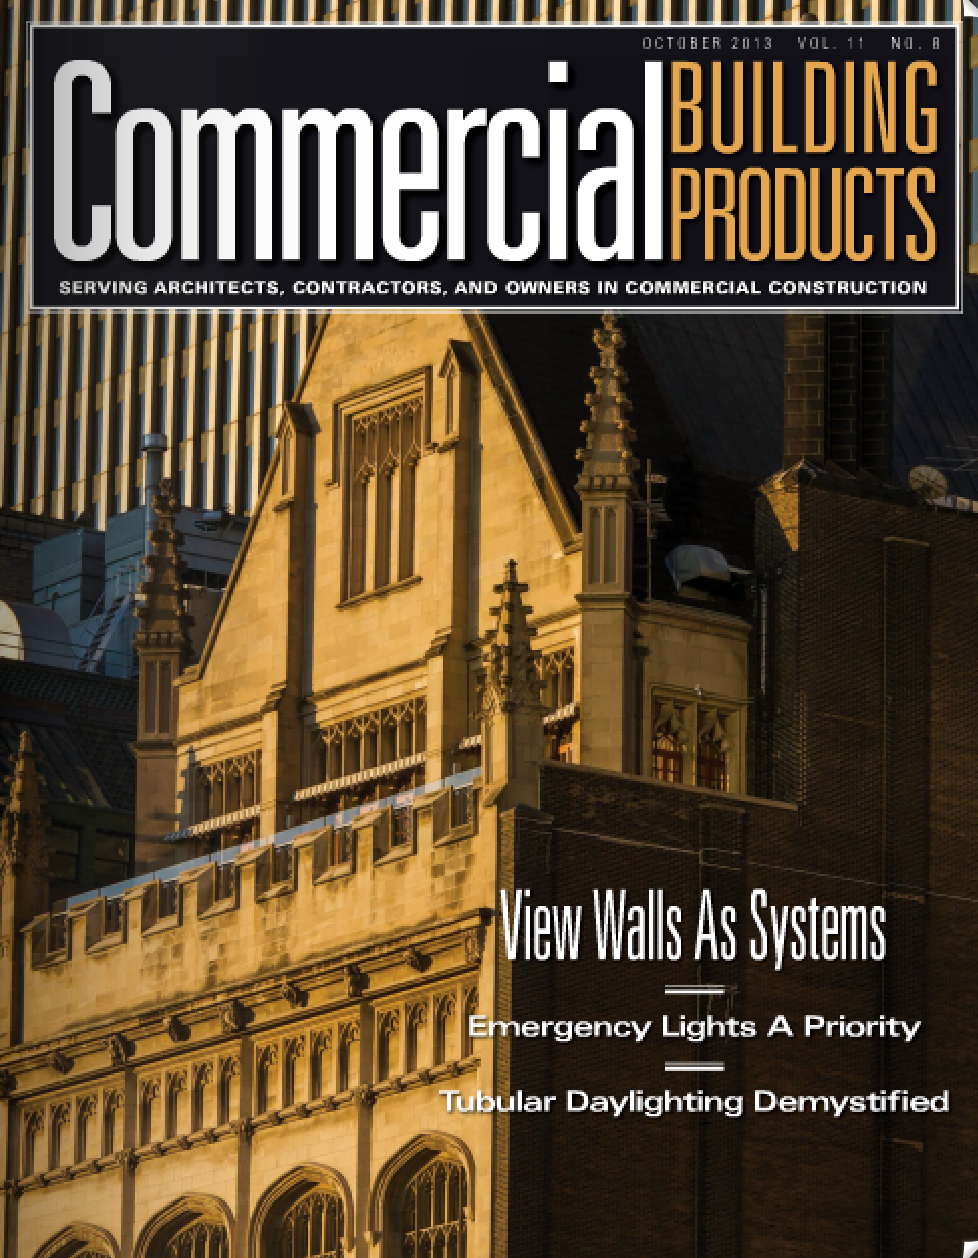 Commercial Building Products Magazine, October issue